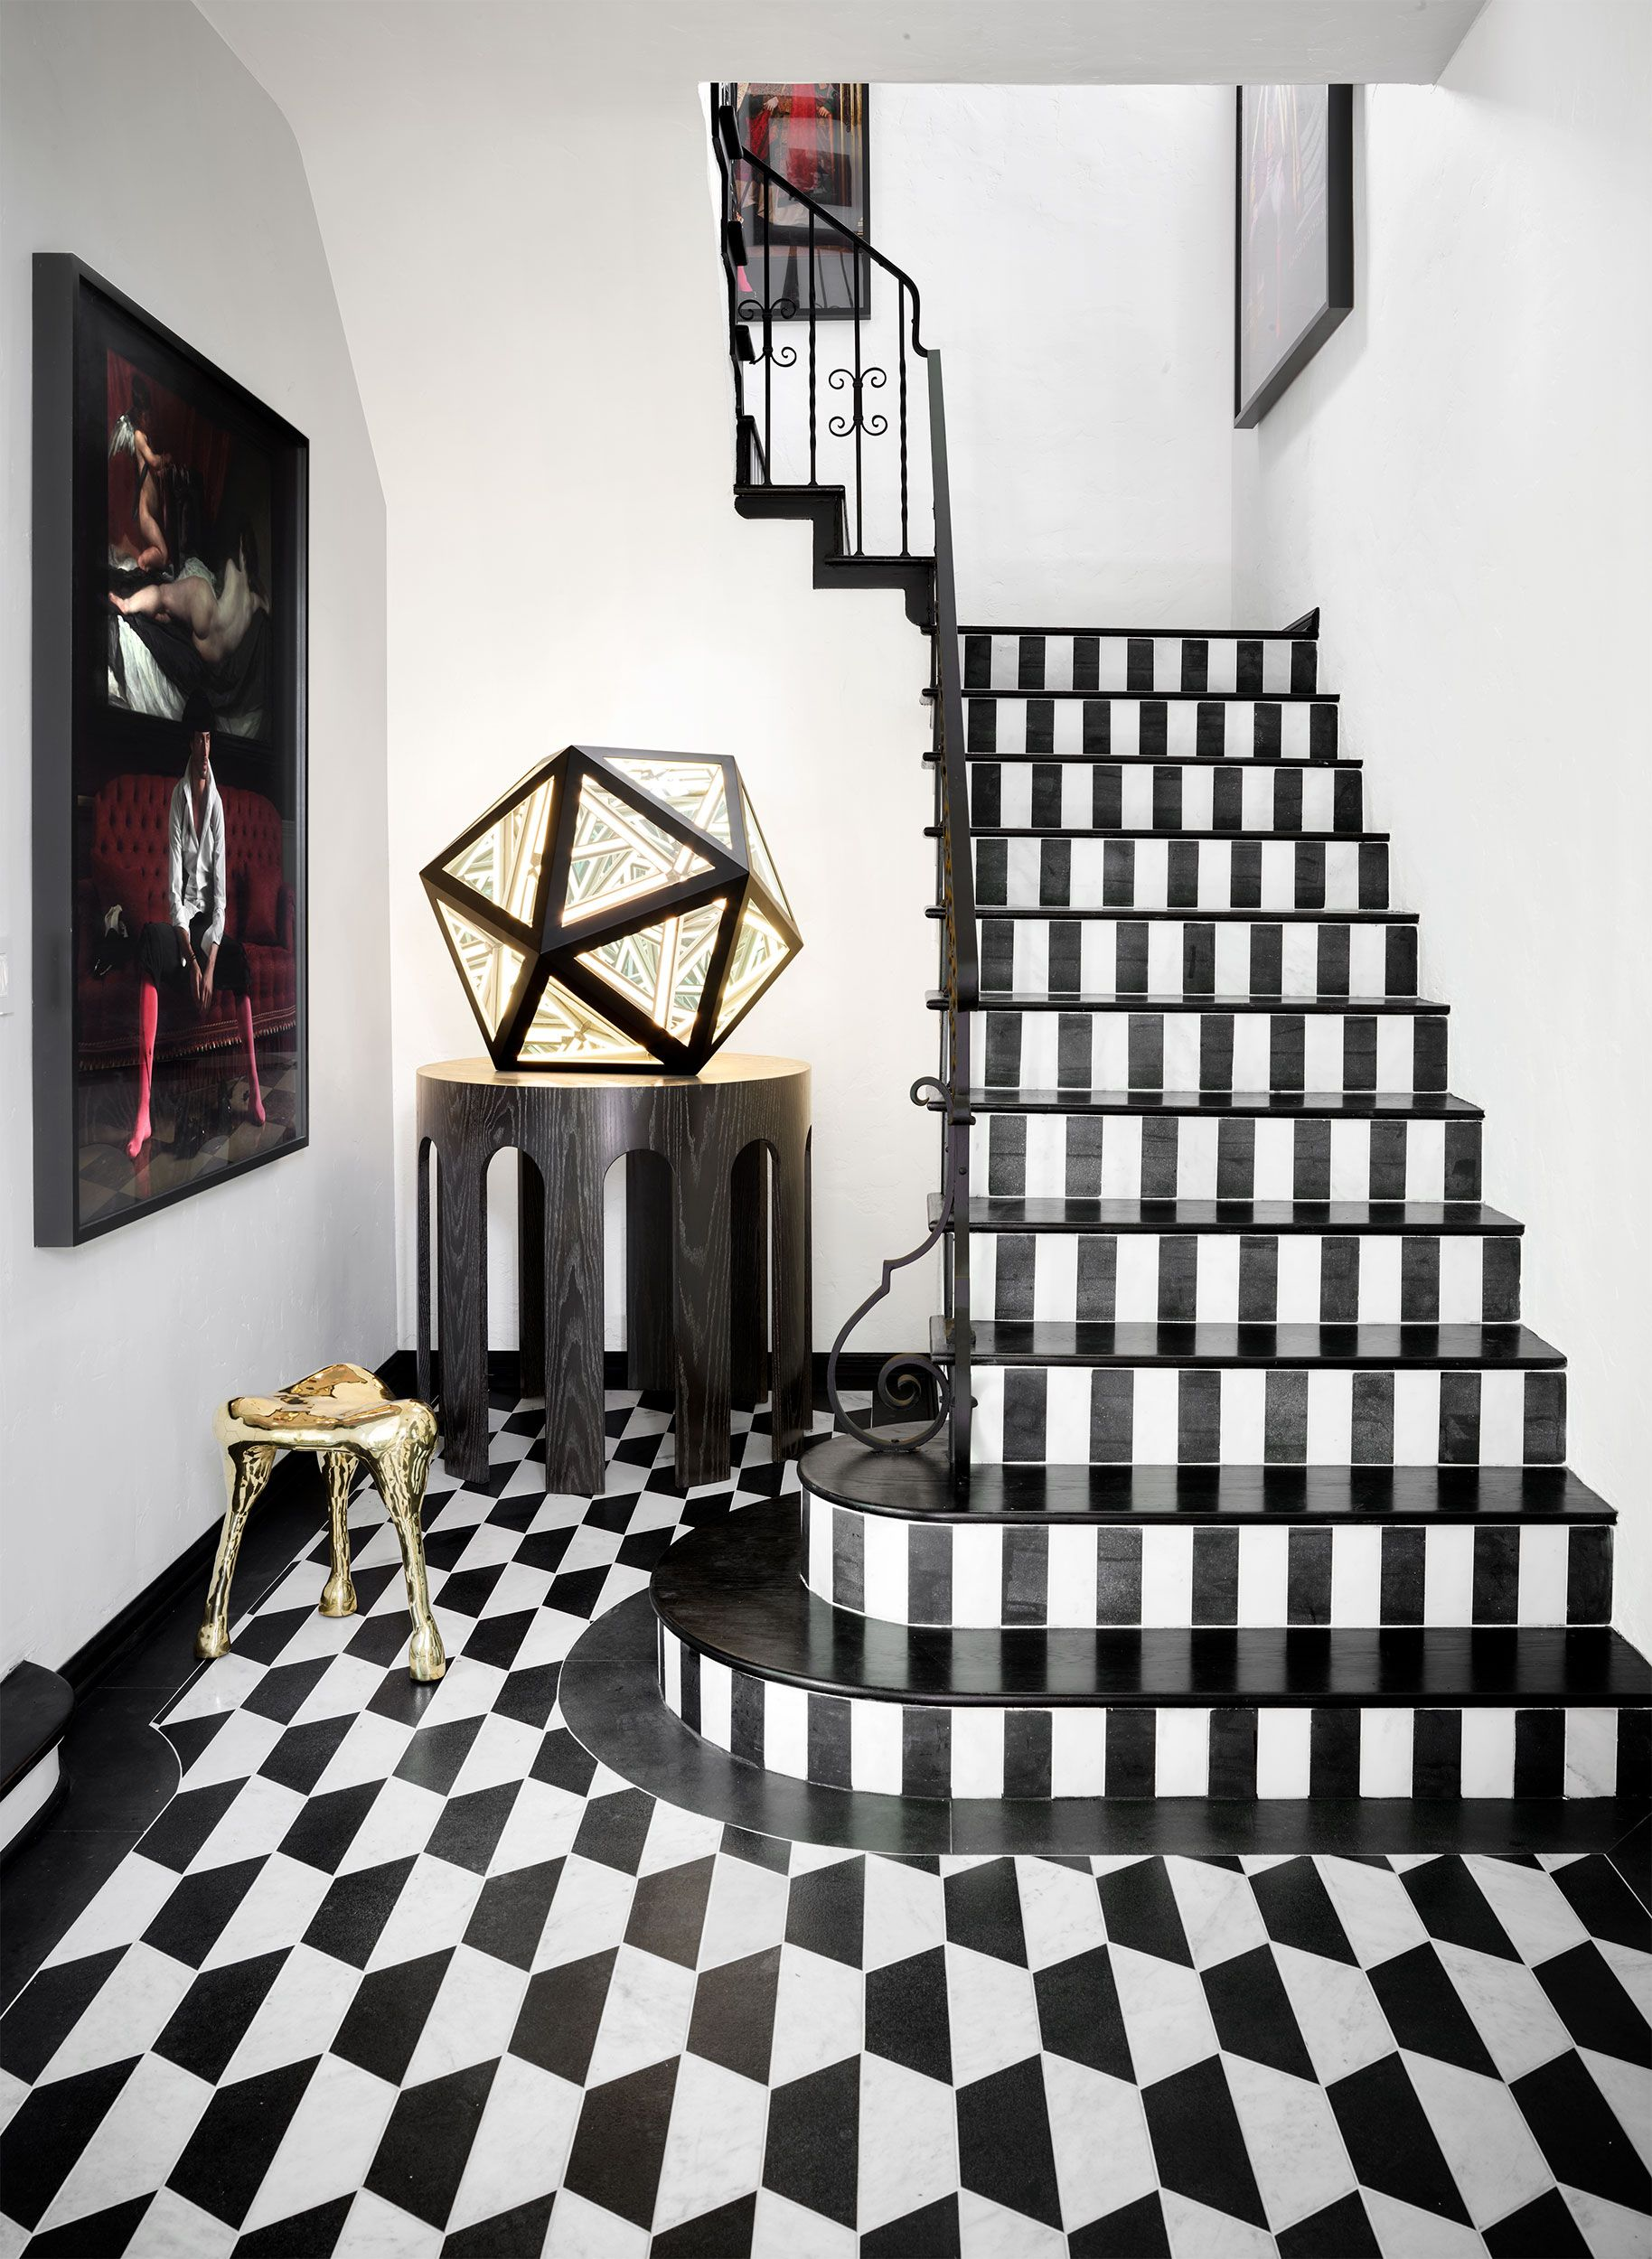 The Most Expressive, Eye-Popping Floor Tiles You'll Find Anywhere